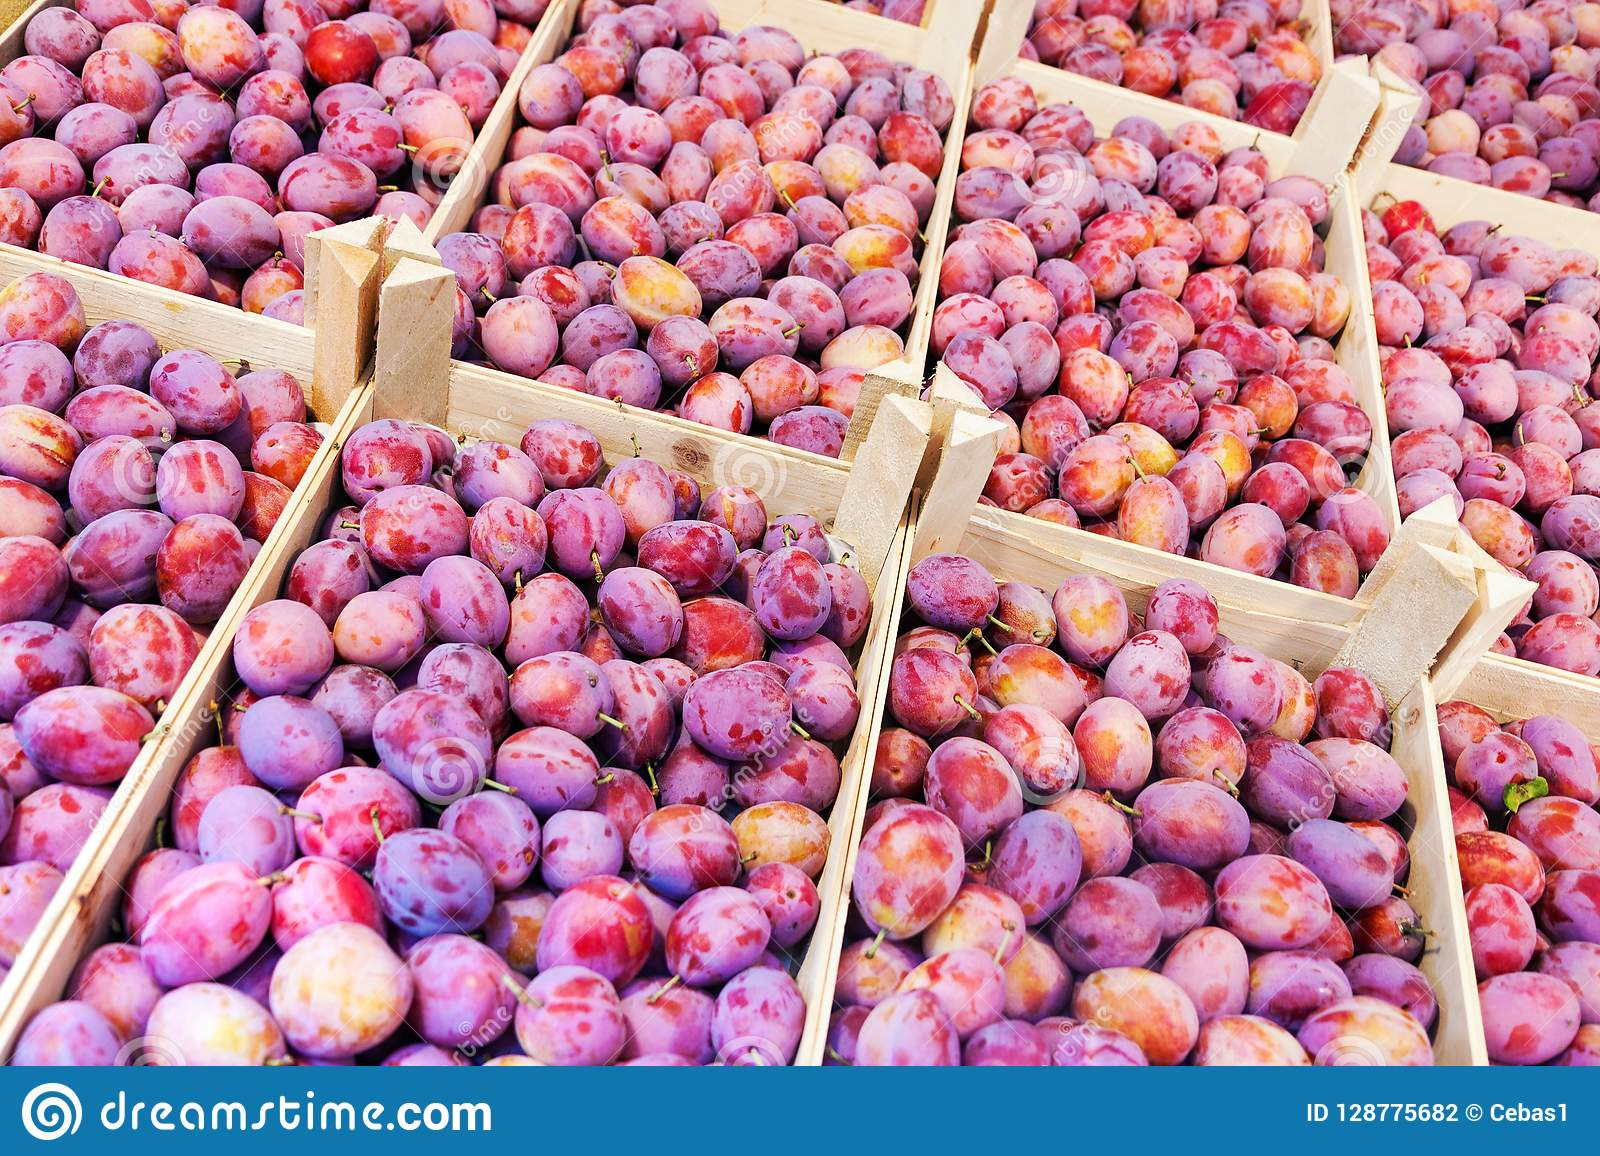 Fresh Plum Fruits In Wooden Boxes For Sale At Market Stock Photo